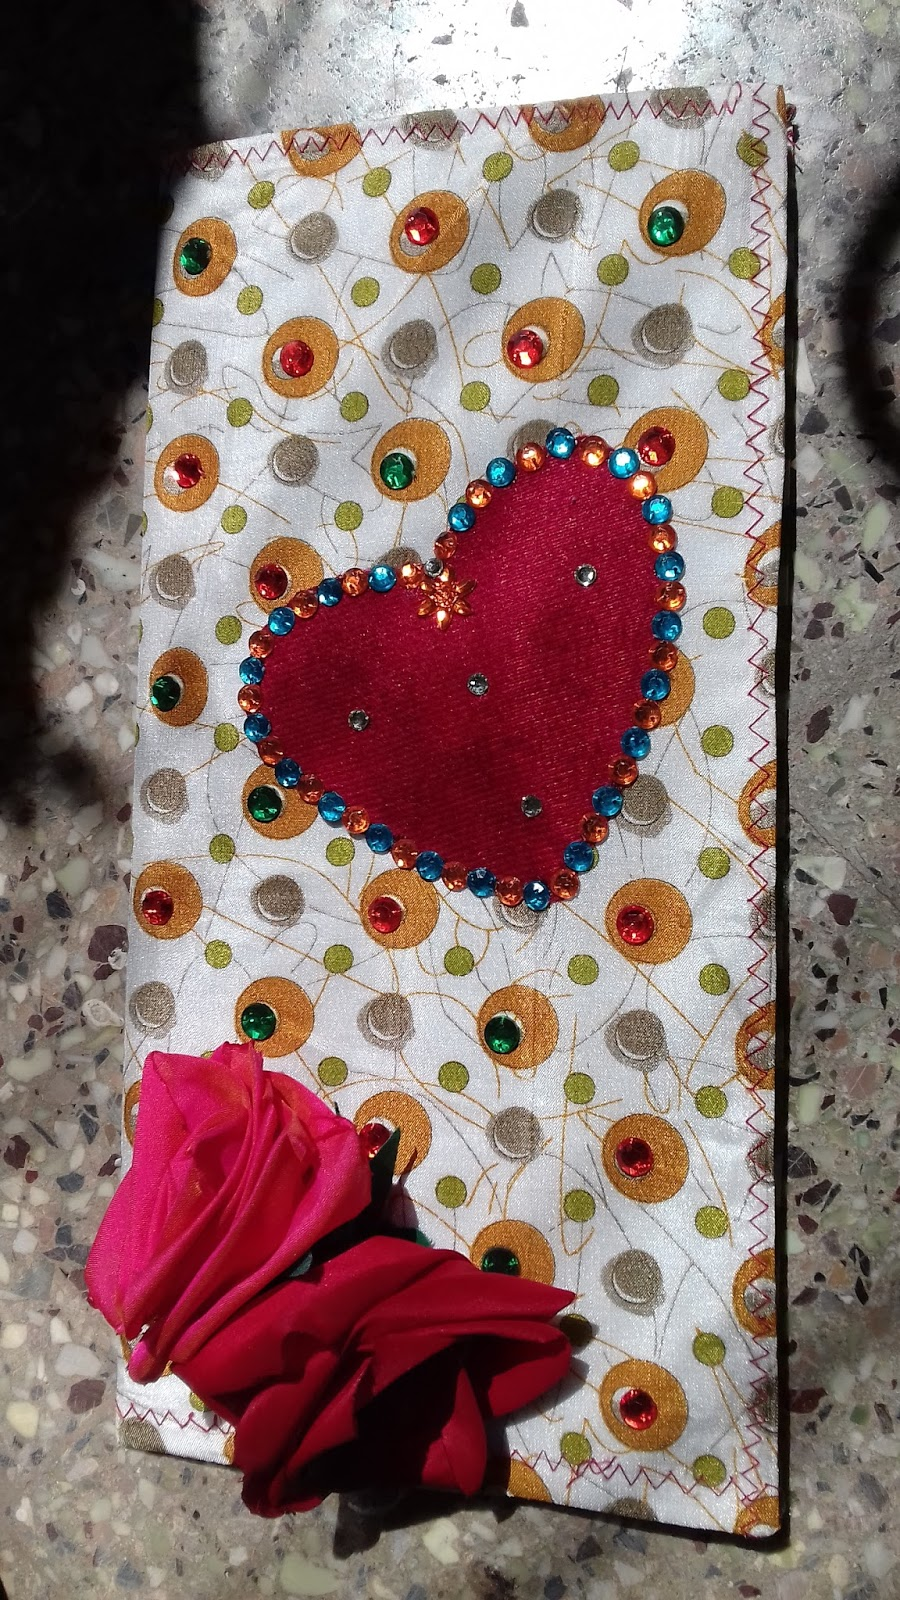 Nutana creations greeting cards a greeting card to express our feelings eco friendly greeting cards is presented here with natural touch of kundan handmade roses and heart shapes kristyandbryce Images